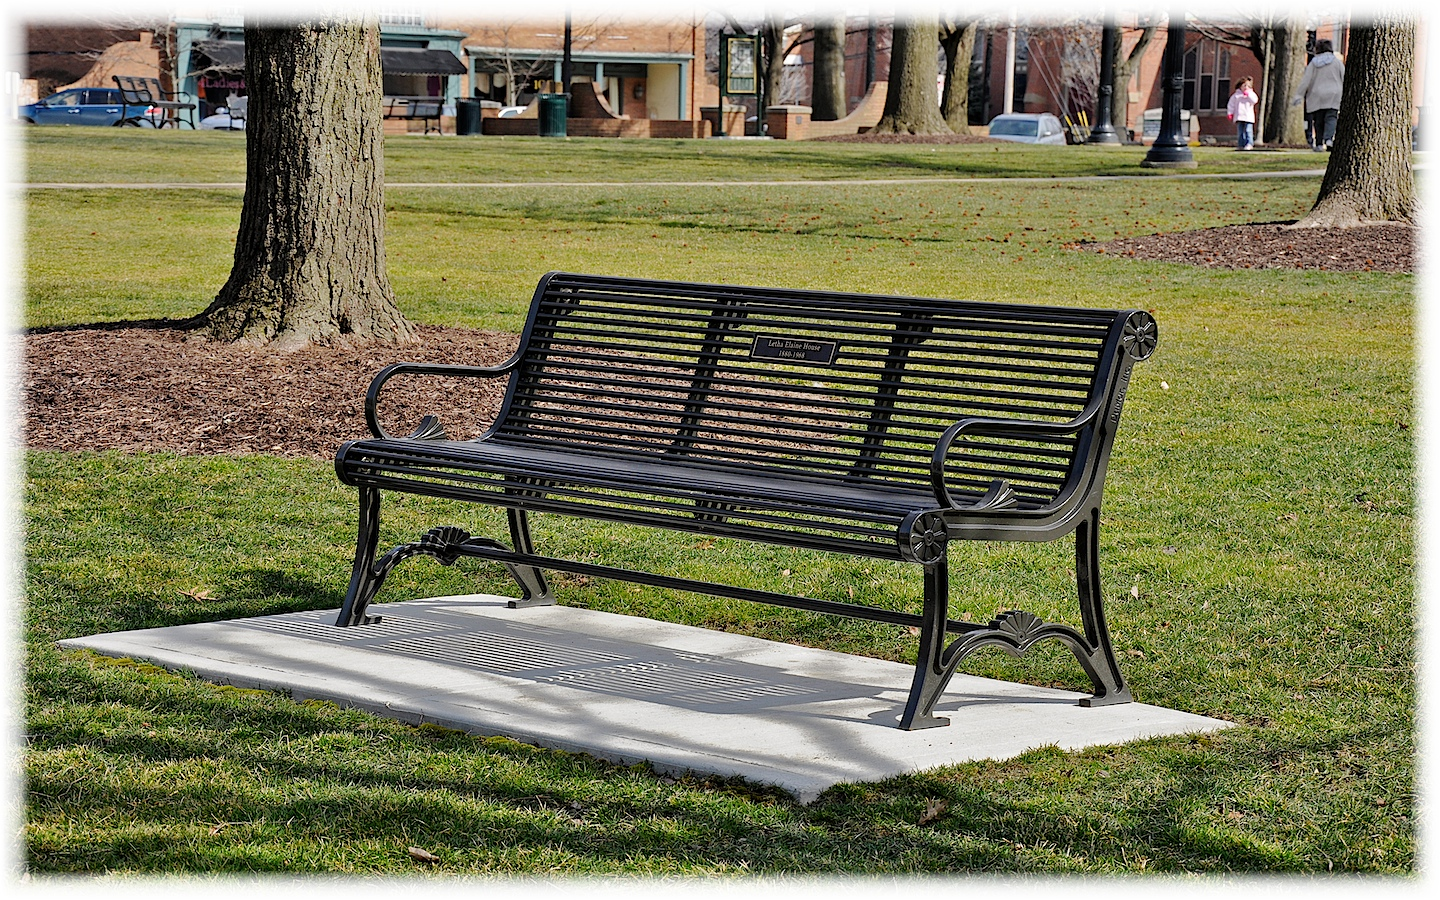 Connecticut Diaries Public Square Park Benches